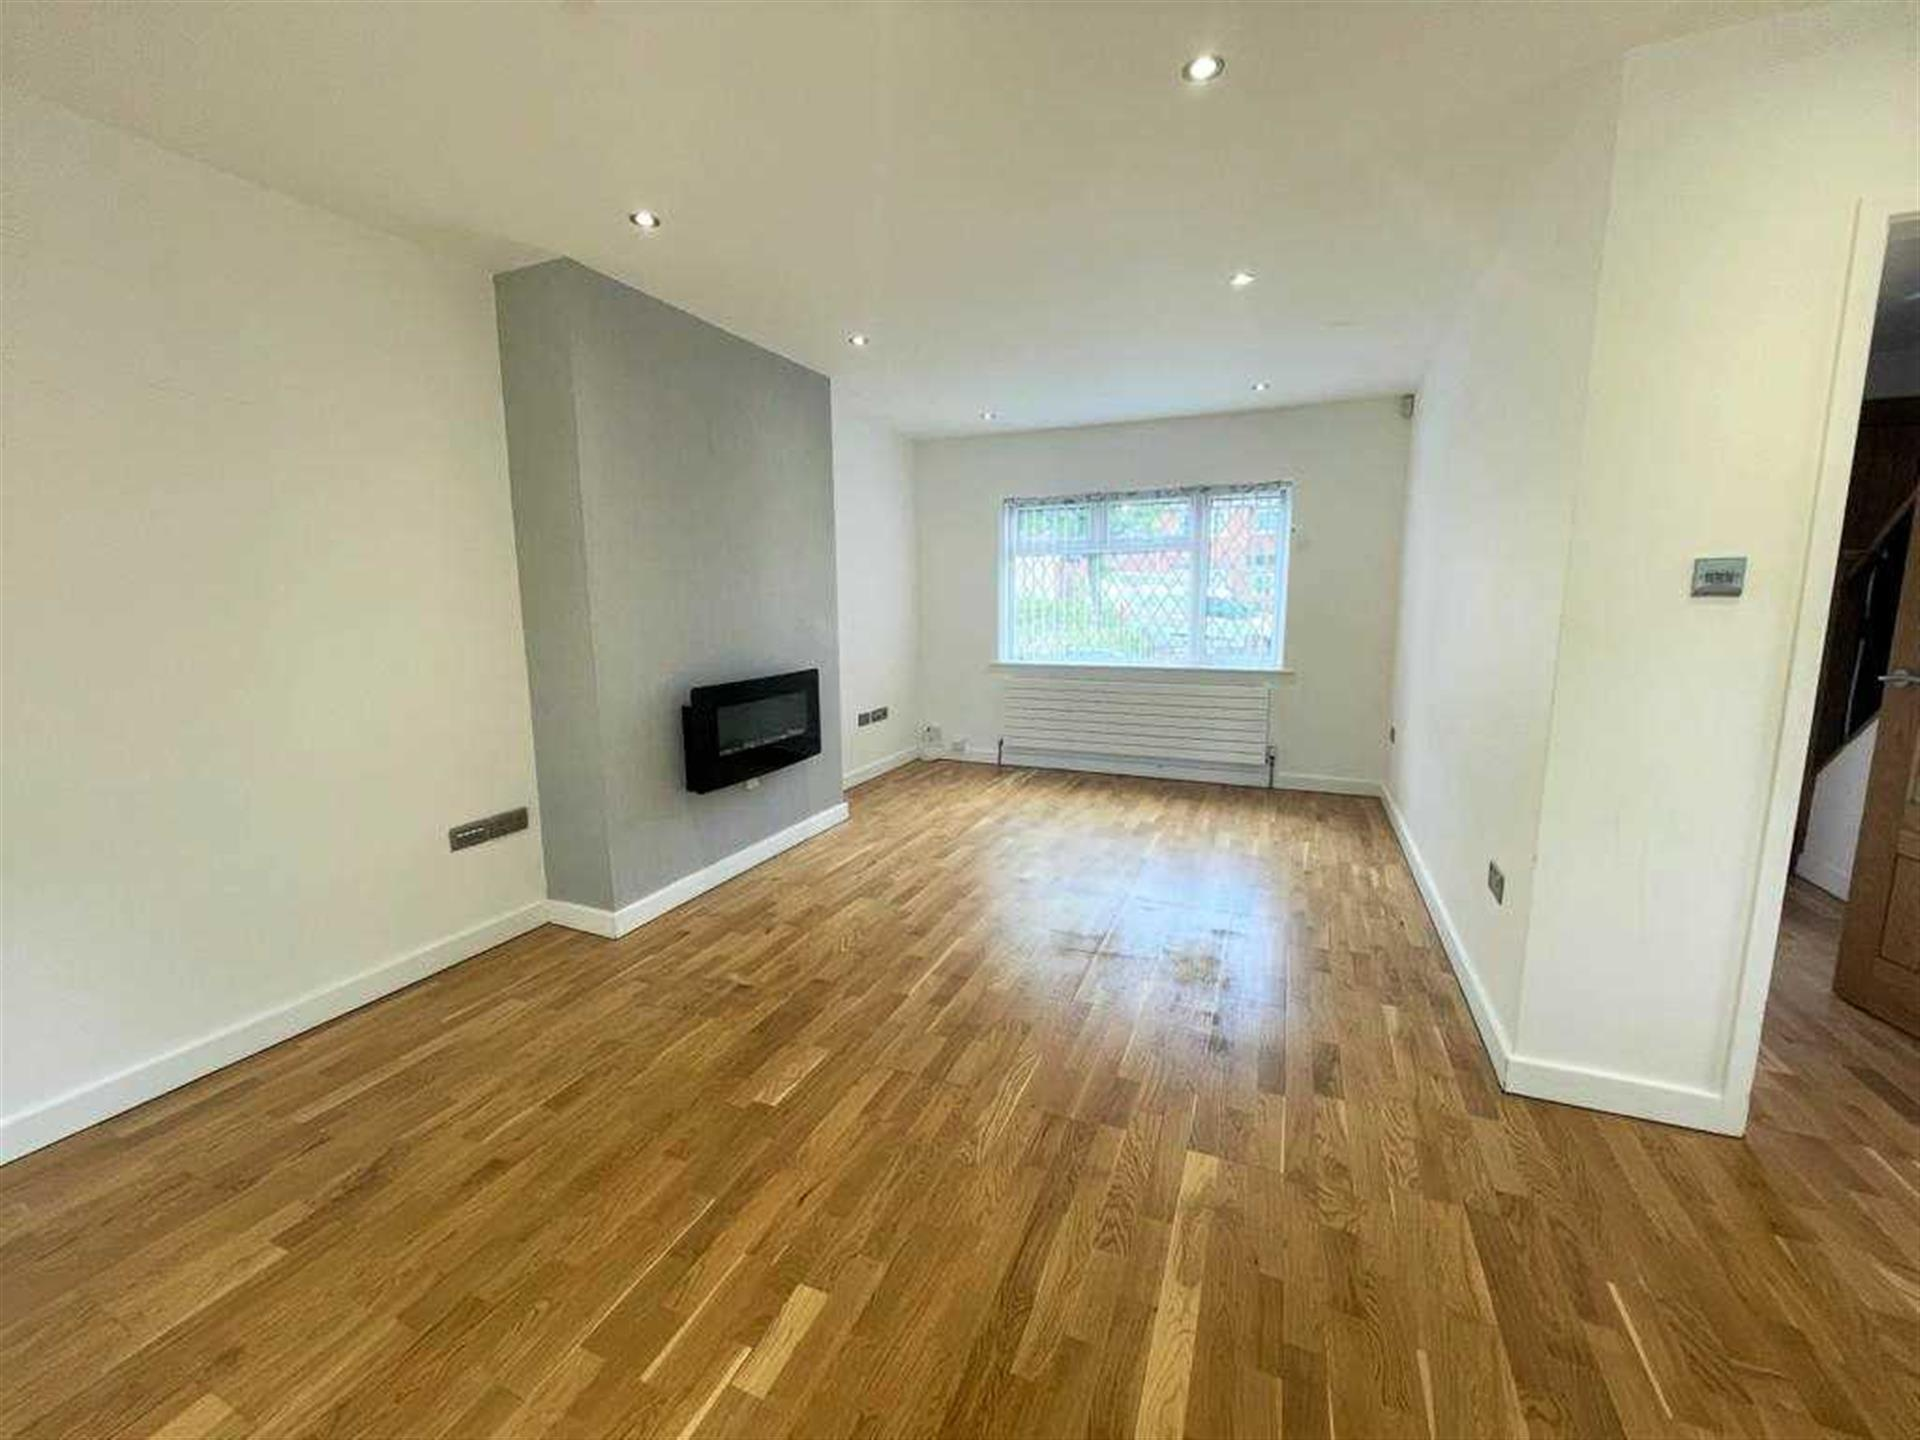 3 Bedroom Semi-detached House For Sale - Lounge, Dining Area